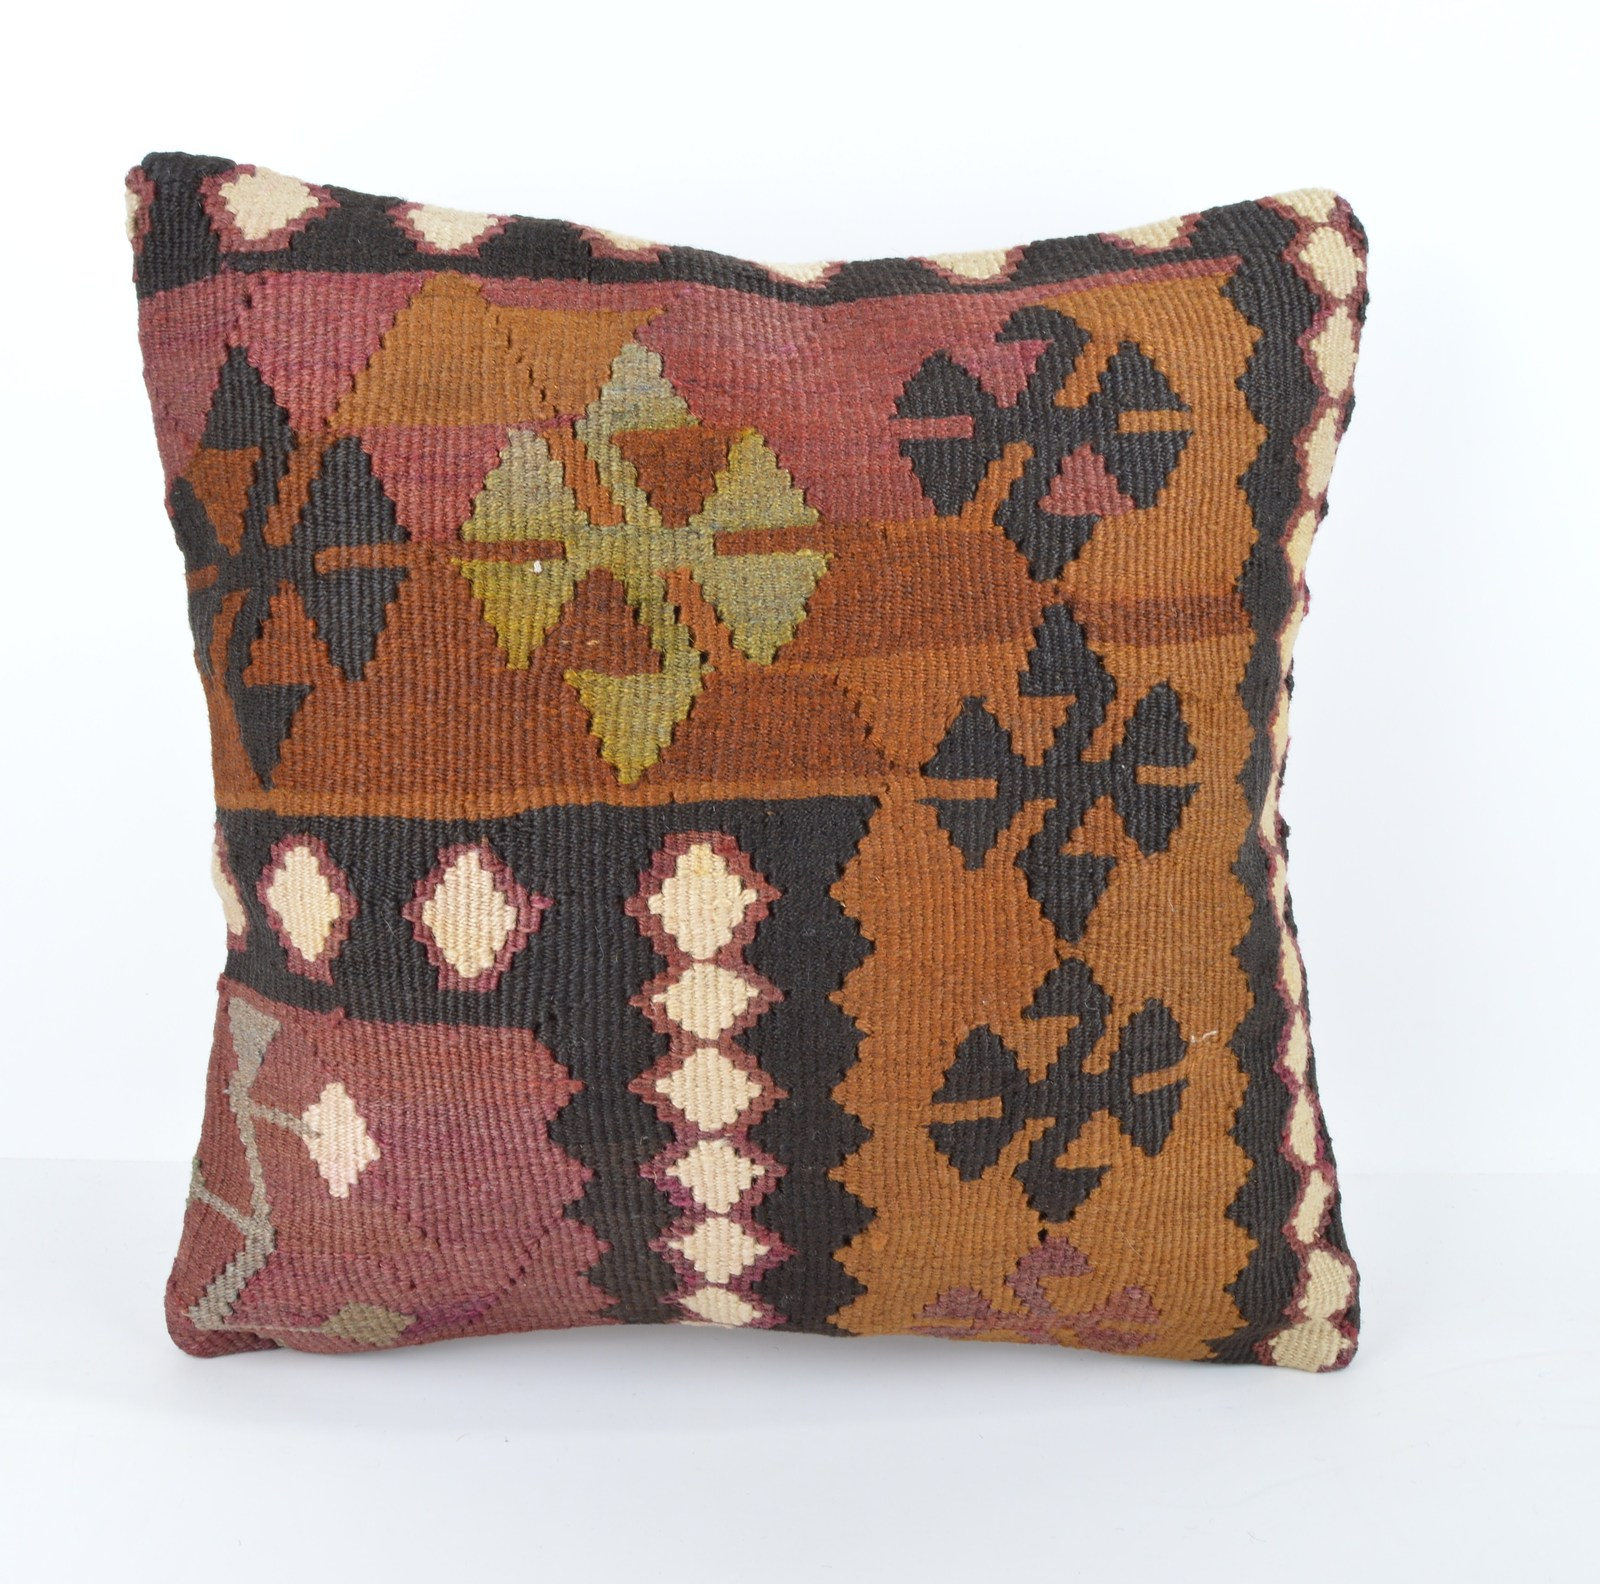 Floor Pillow Covers 25x25 : brown pillow cover furniture pillow floor cushion cover easter pillow design - Pillows